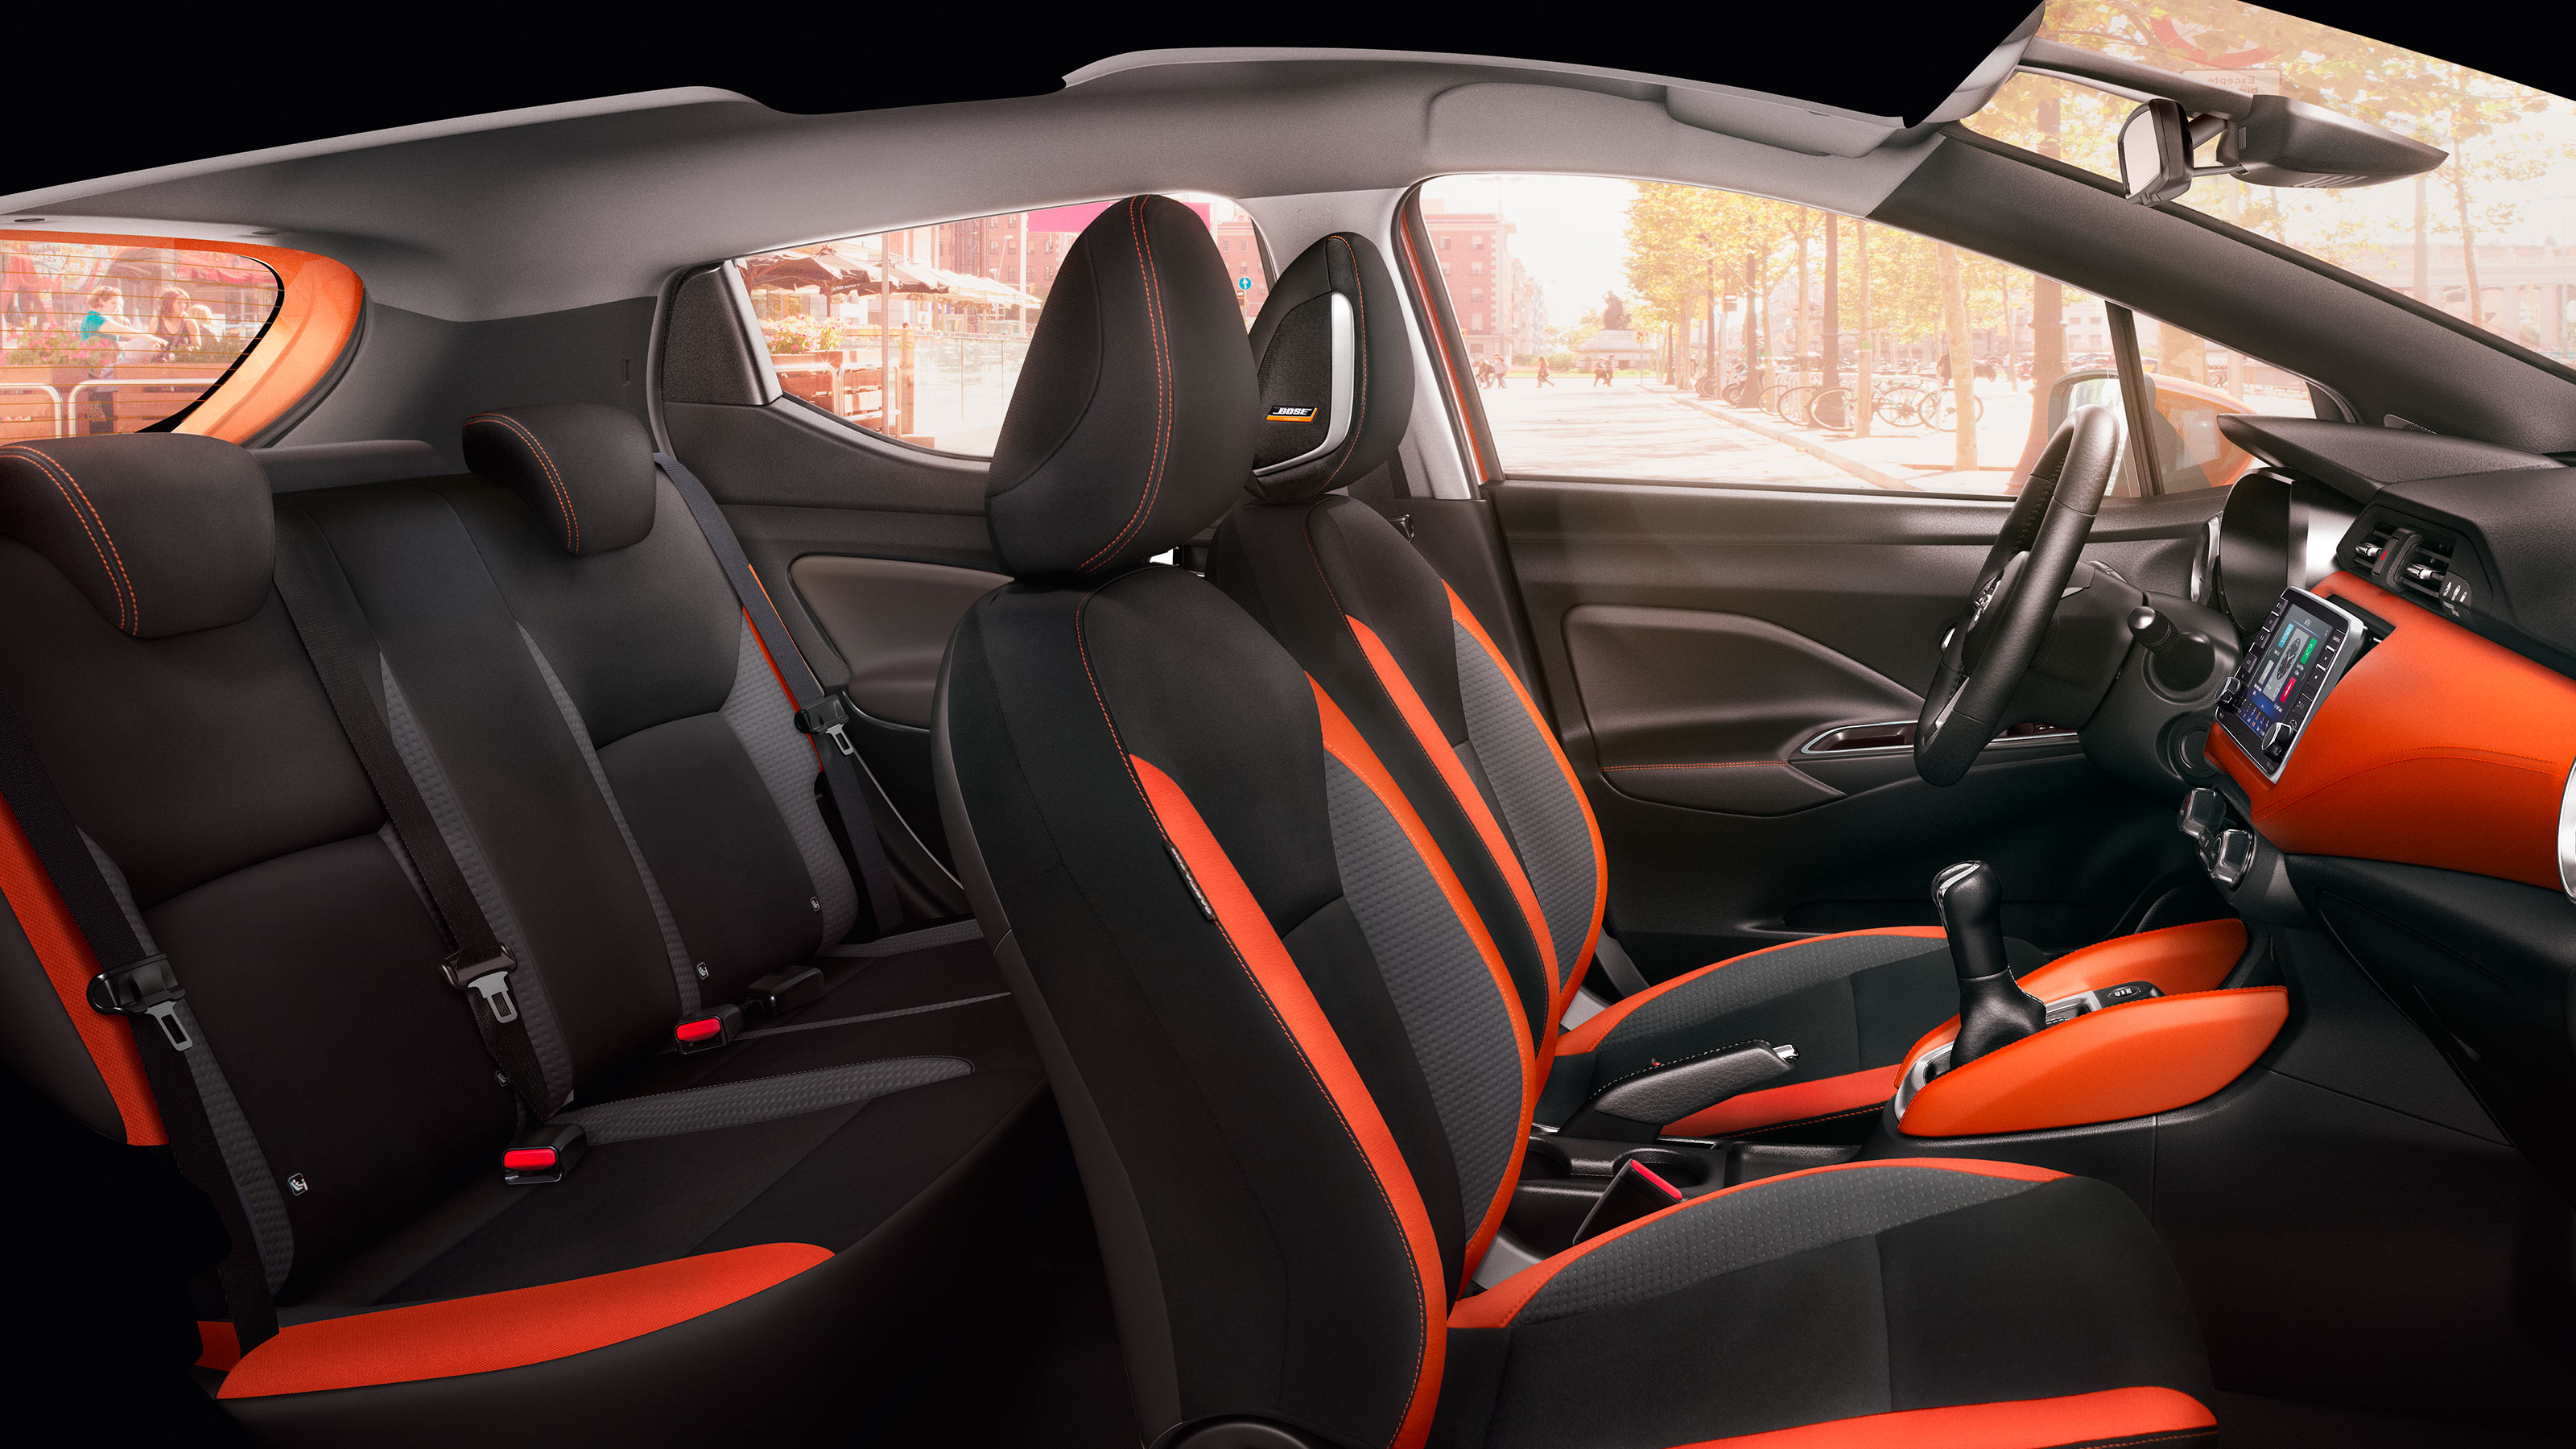 Nissan Micra Contrasting Seat Panels